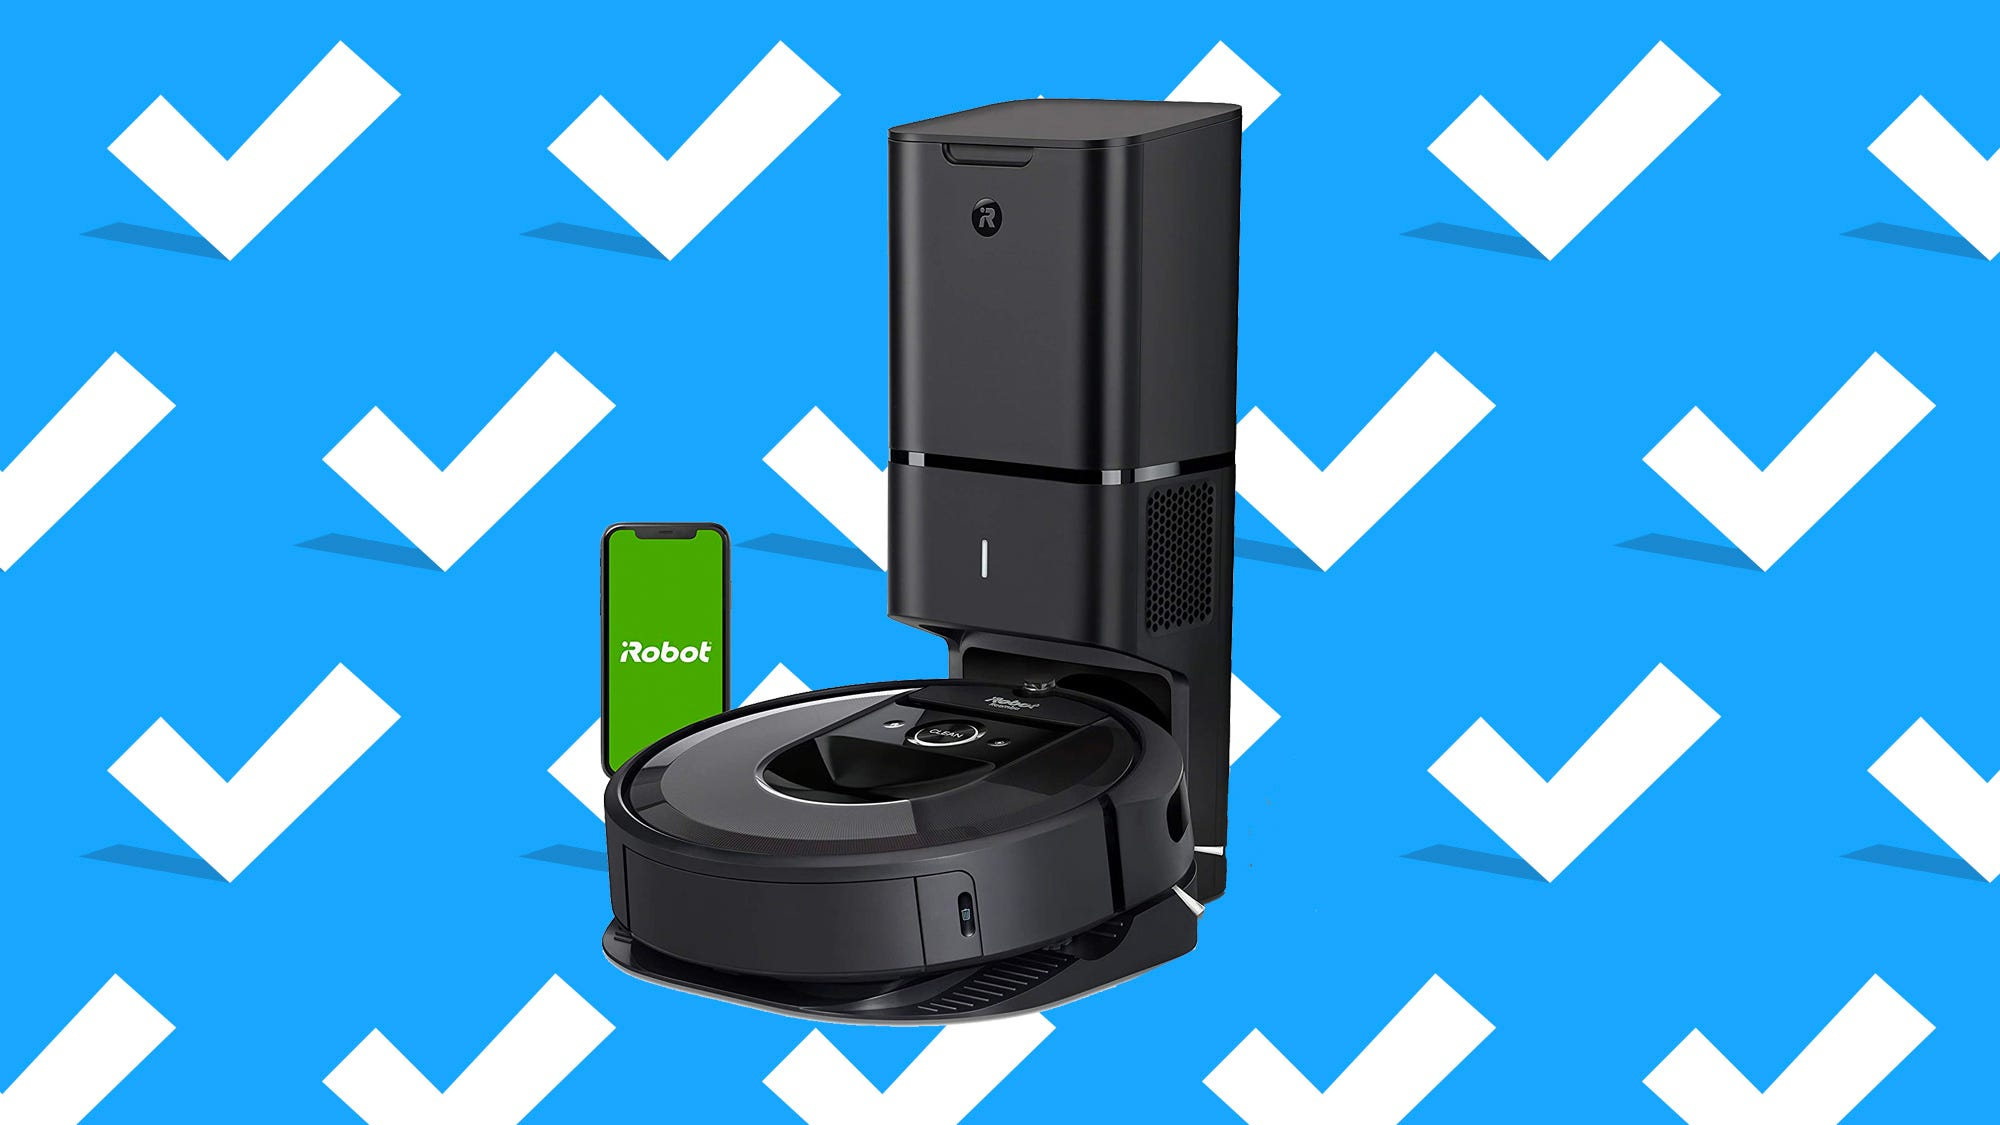 Save on theiRobot Roomba i7+, AncestryDNA kits and more